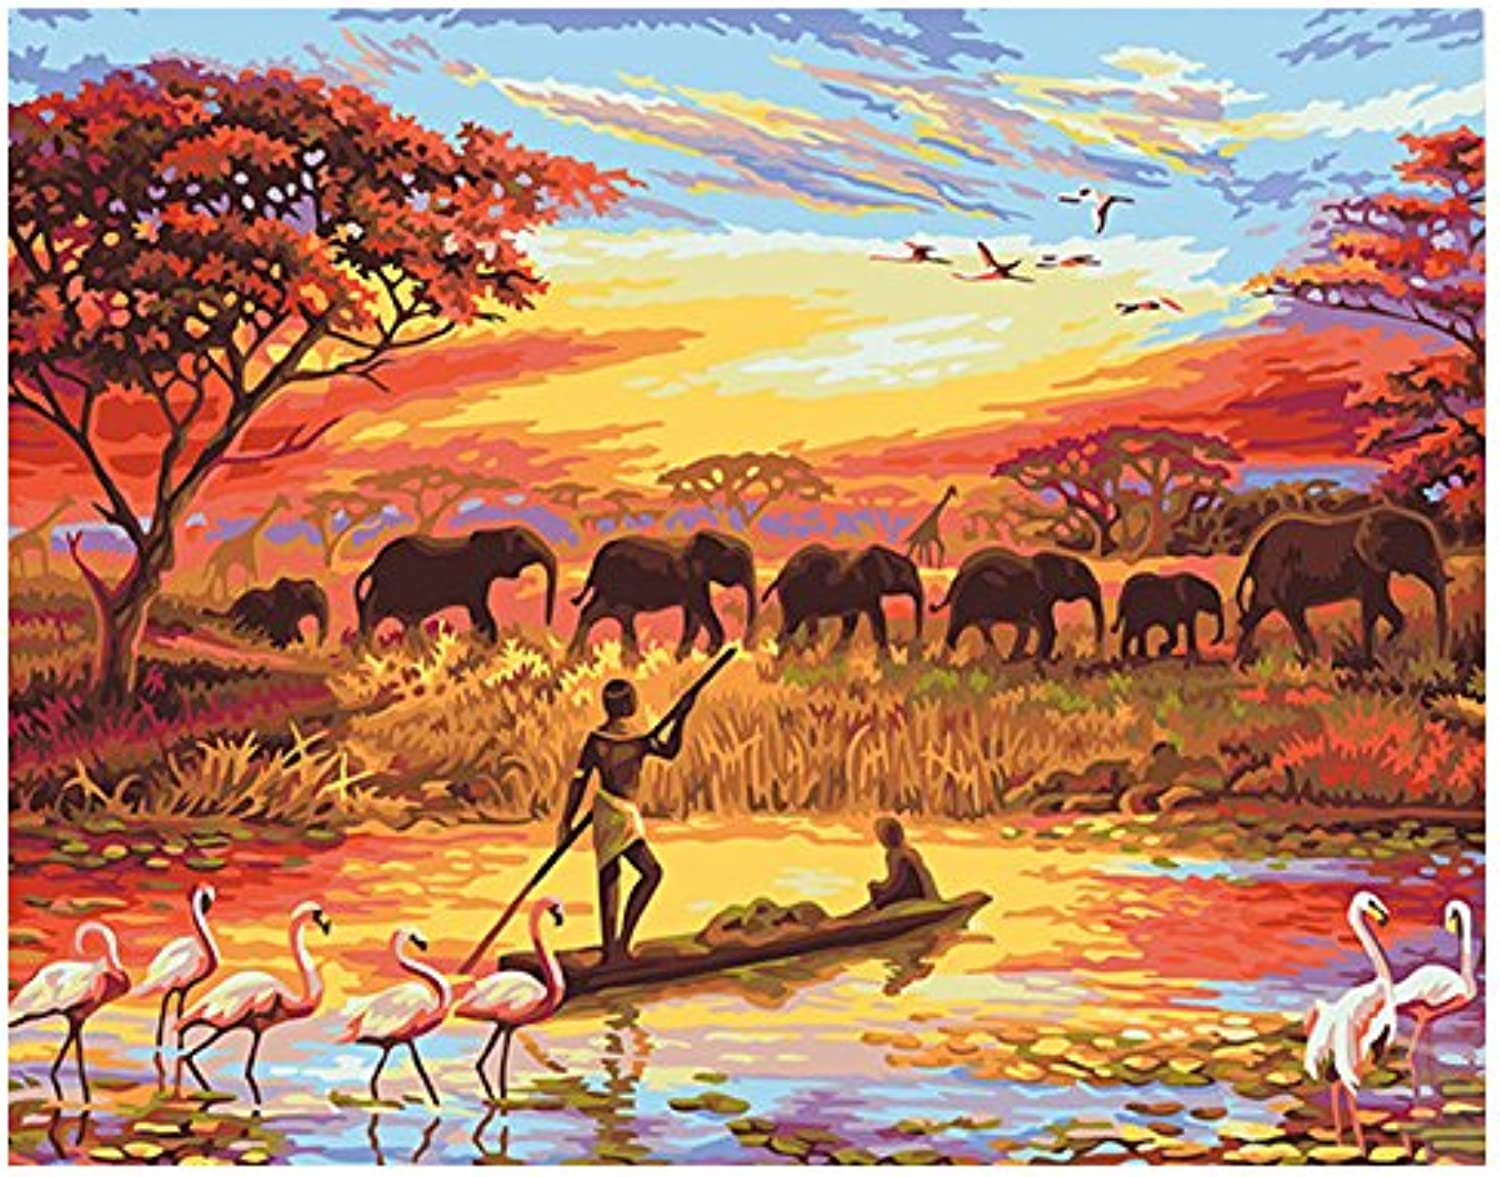 DIY Oil Paint by Number Kit for Adults Beginner 16x20 Inch - Sunset Elephant Flamingo,Drawing with Brushes Living Room Decor Decorations Gifts (Framed)